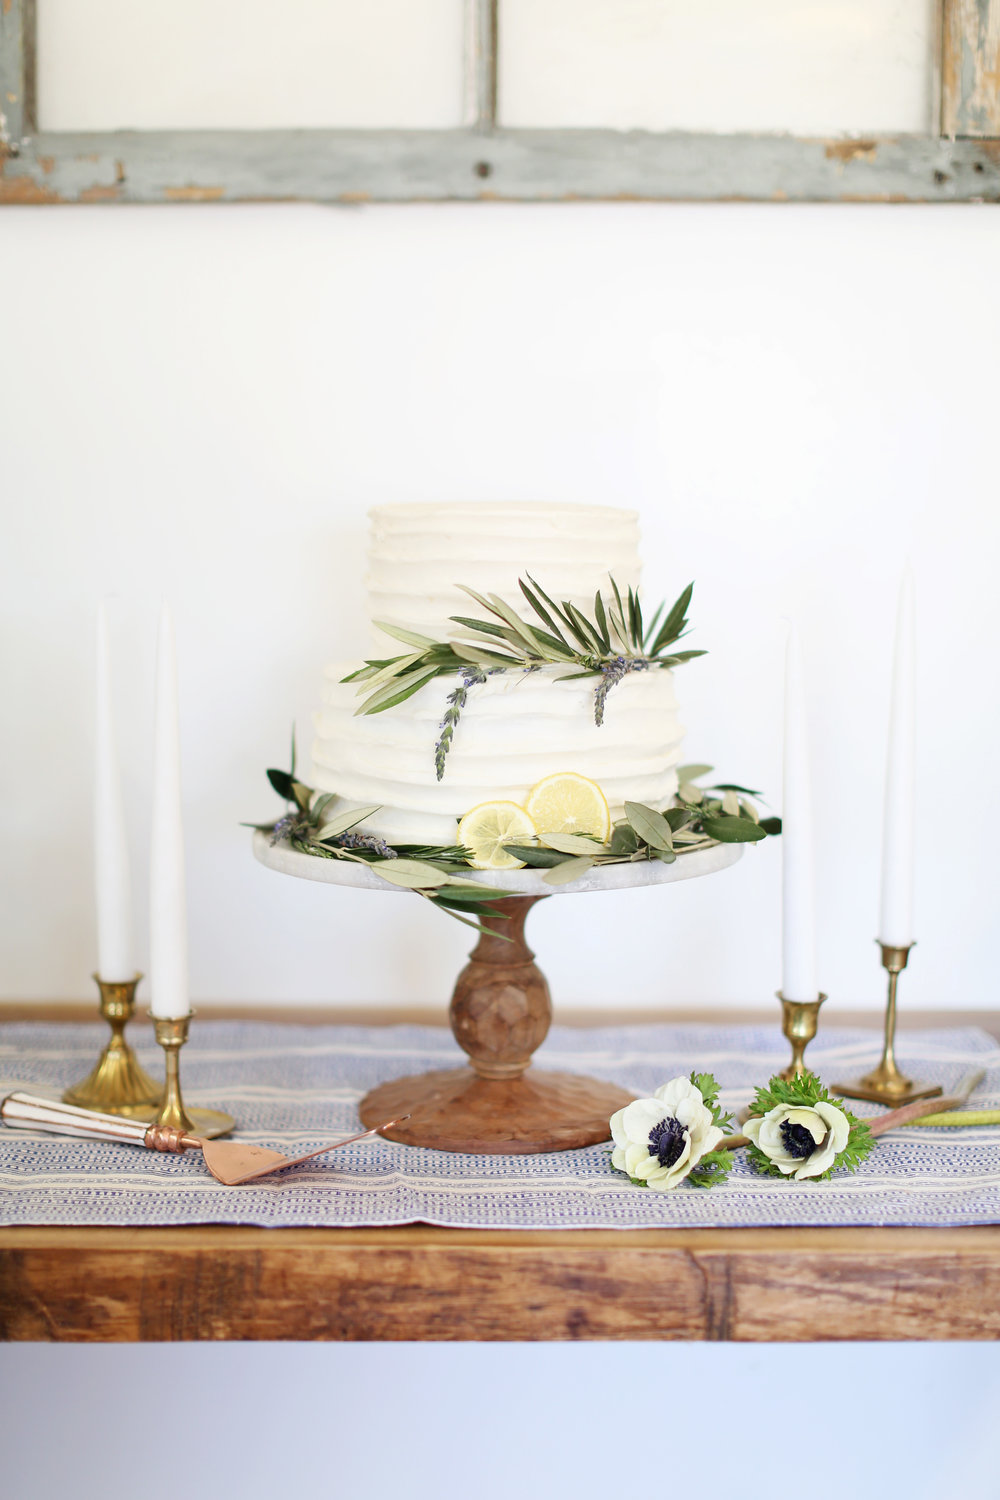 Lemon Lavender Tiered Cake - Stacy Salvatori Photography